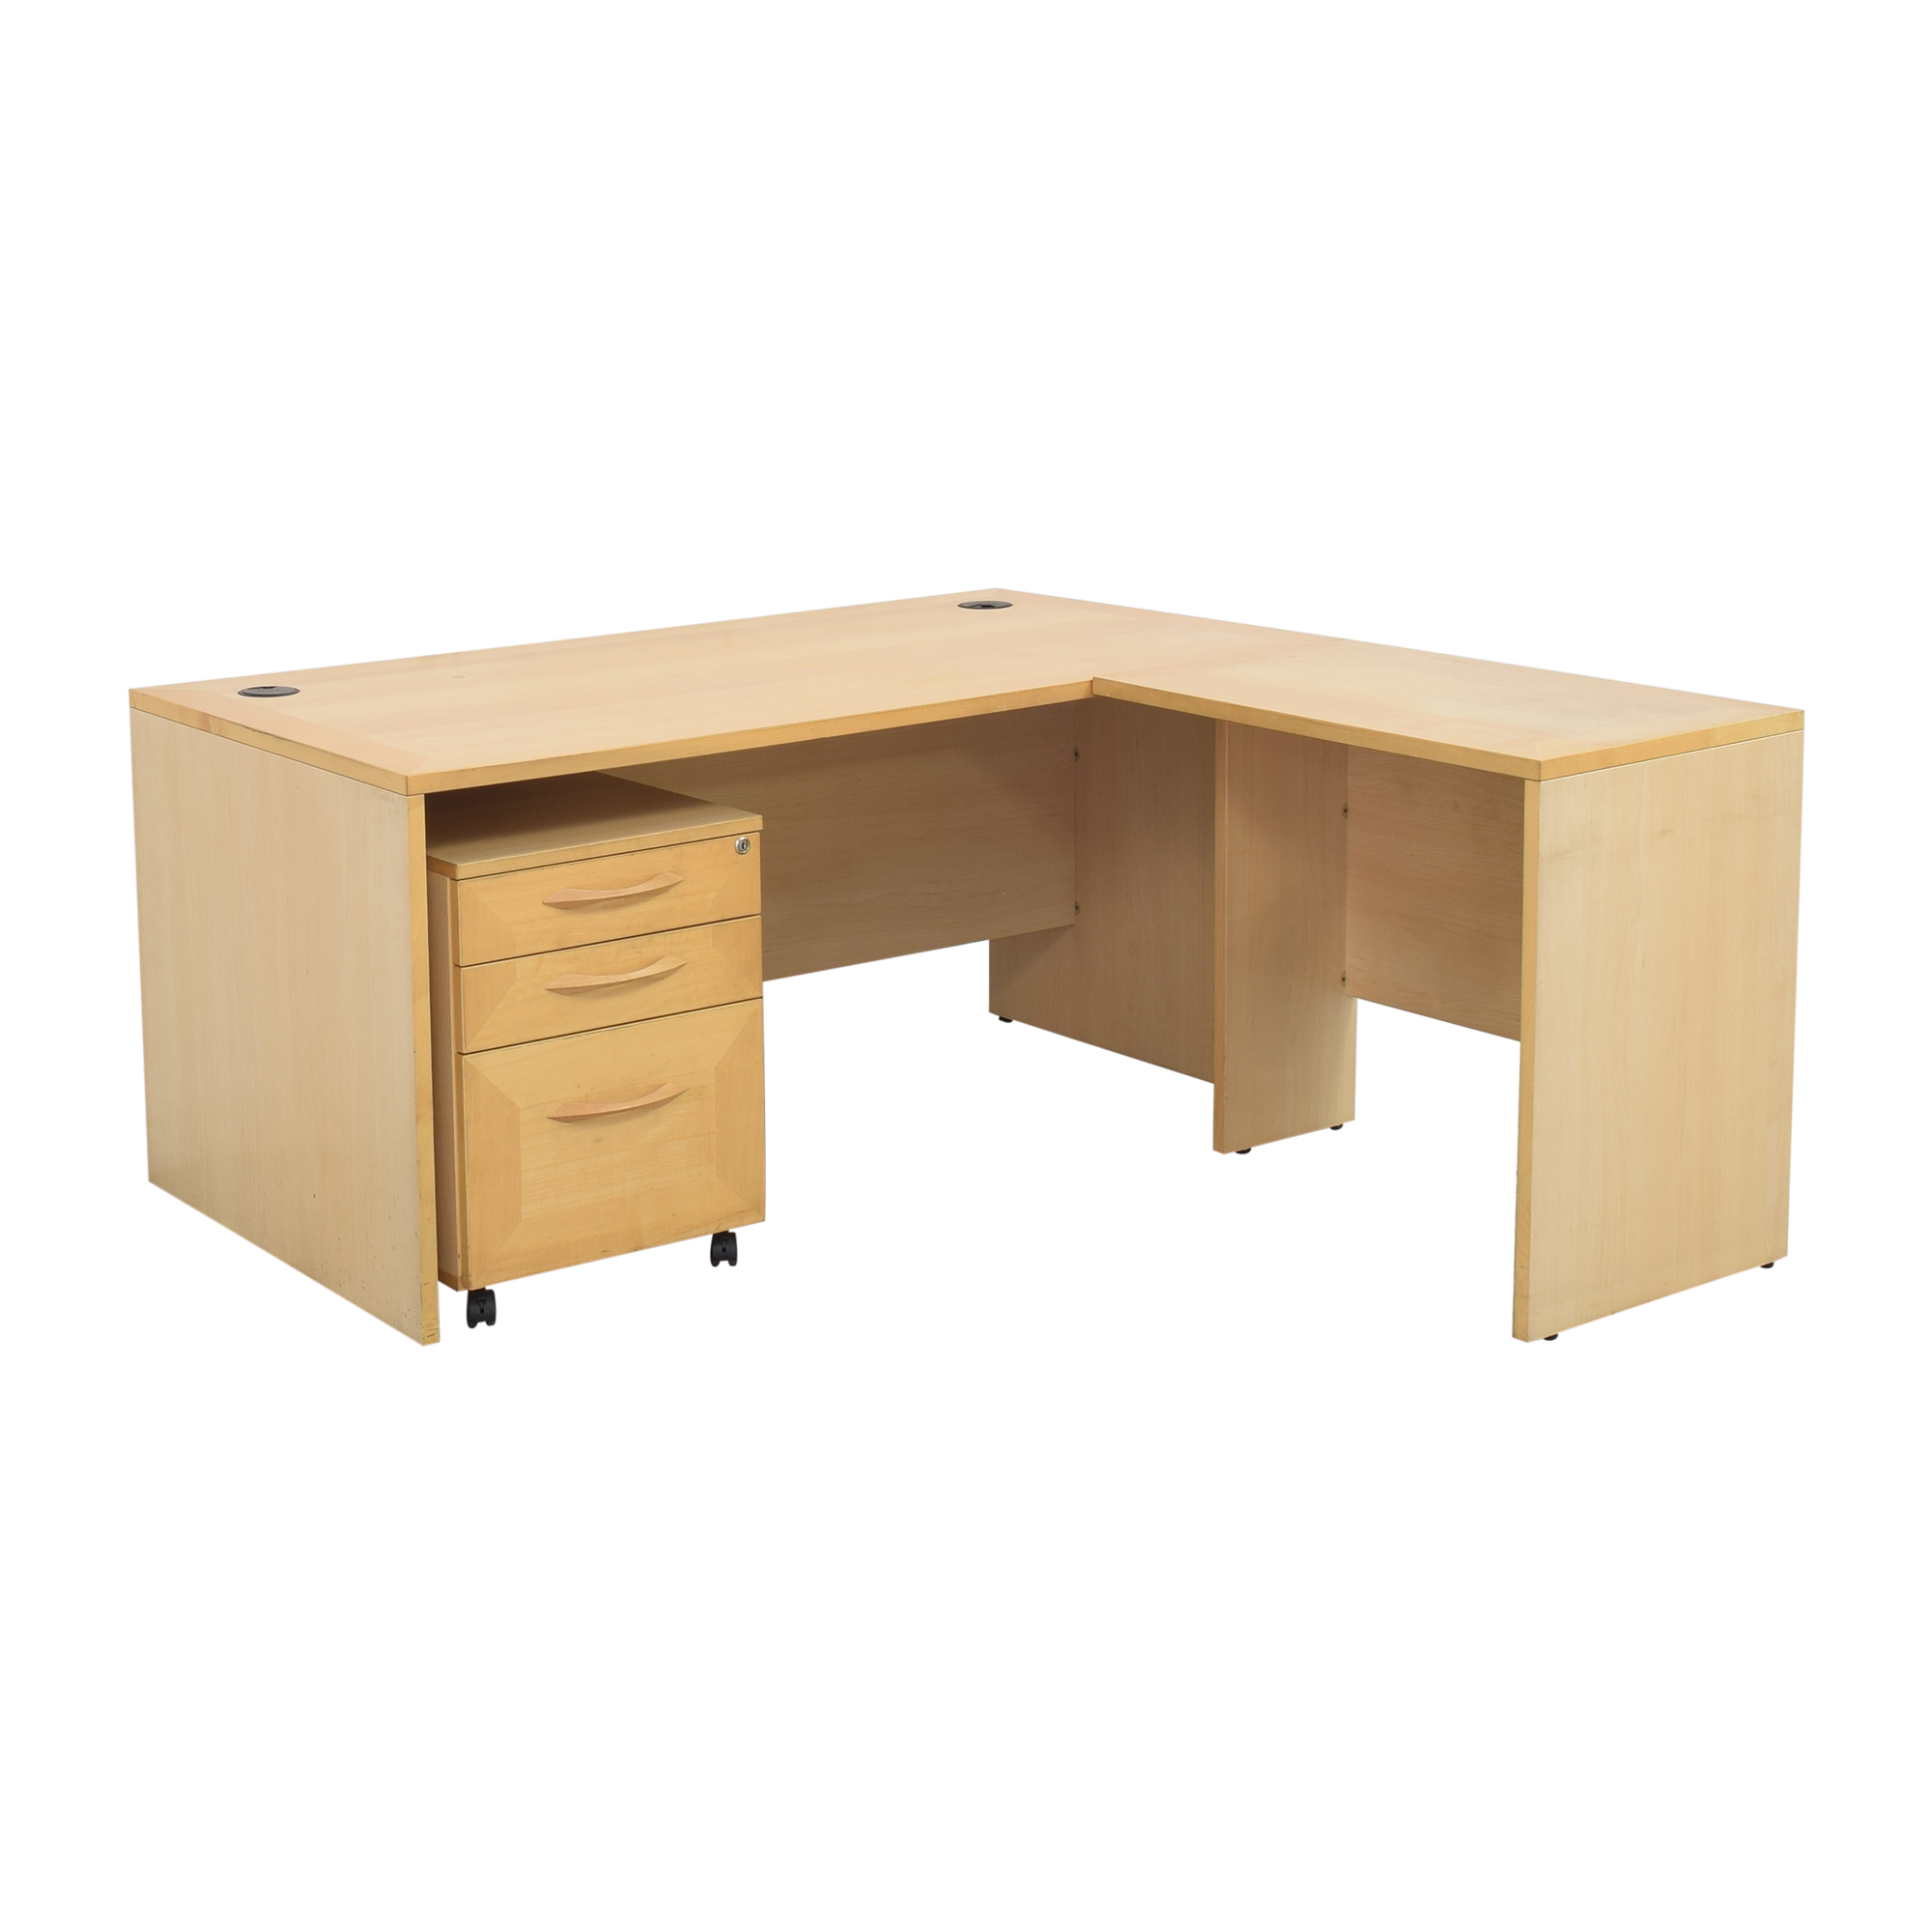 Door Store Desk with File Cabinet / Tables